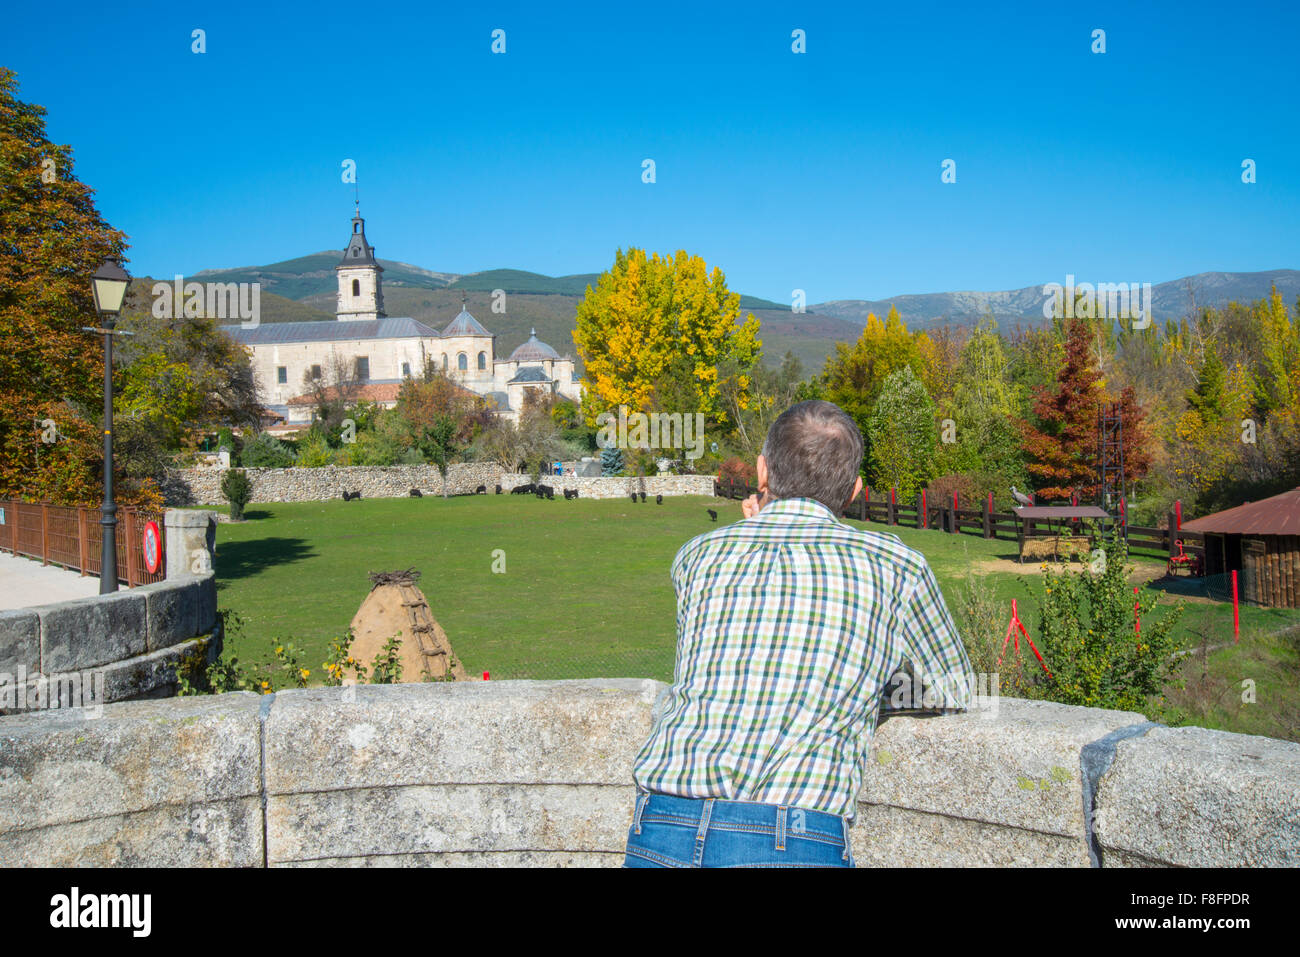 Man at the viewpoint. Puente del Perdon, Rascafria, Madrid province, Spain. - Stock Image